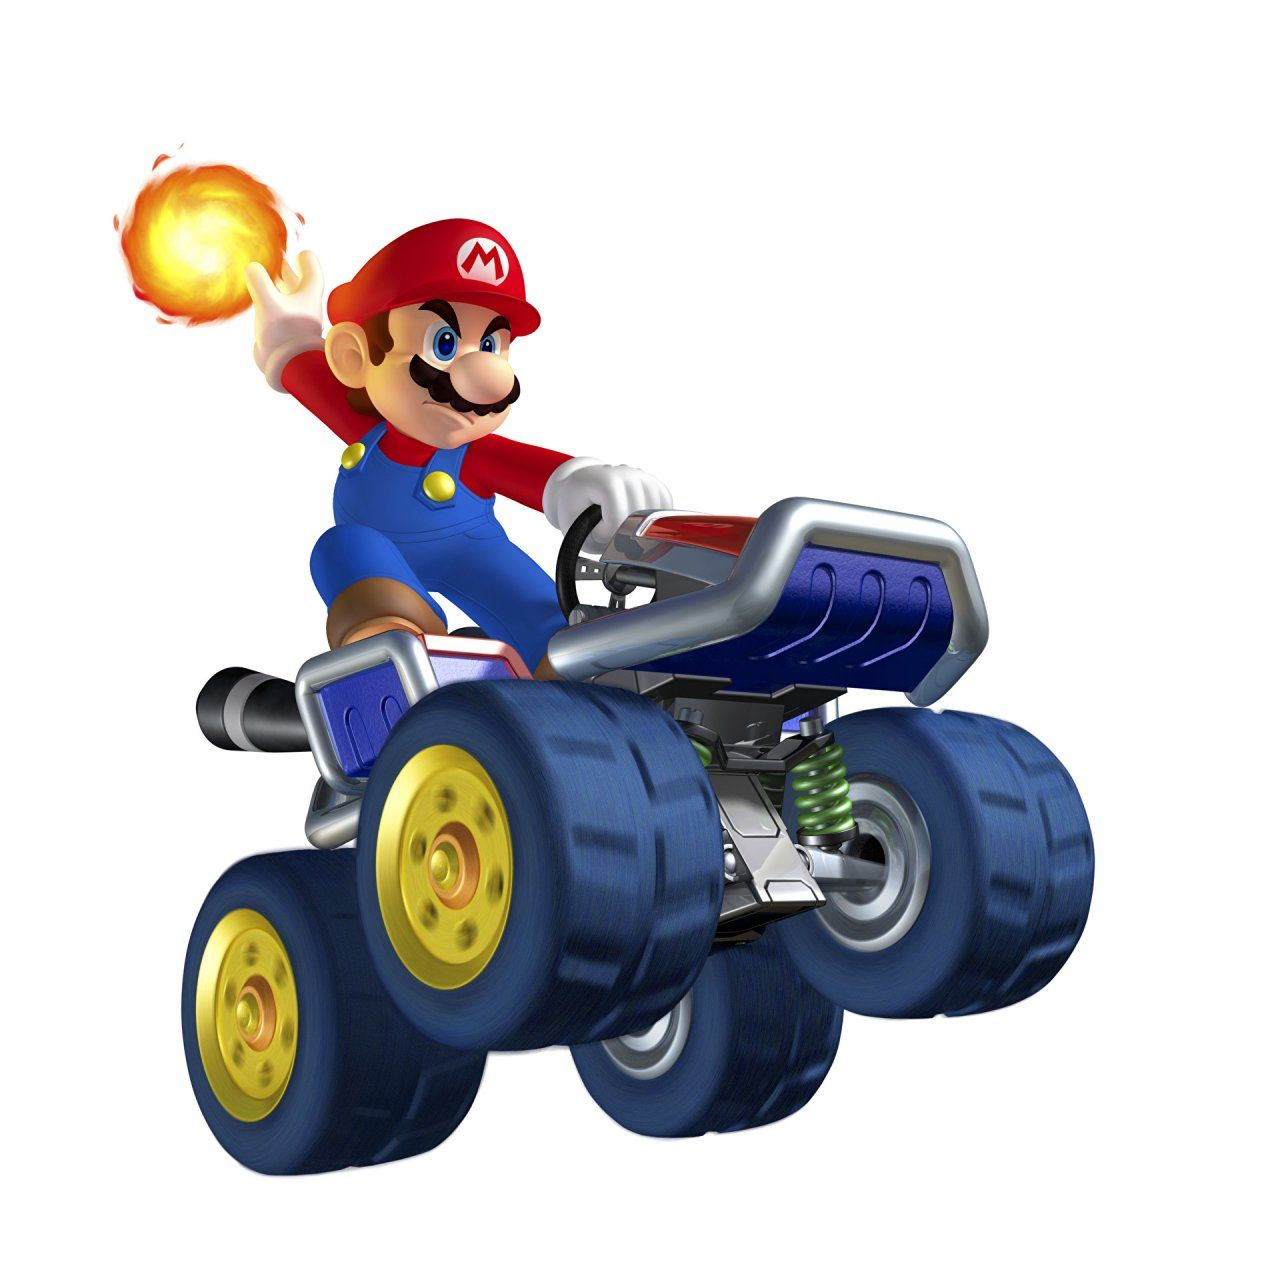 Mario Kart 7 Fastest Family Competition Calls In A Celeb Mario Kart 7 Super Mario Bros Mario Kart